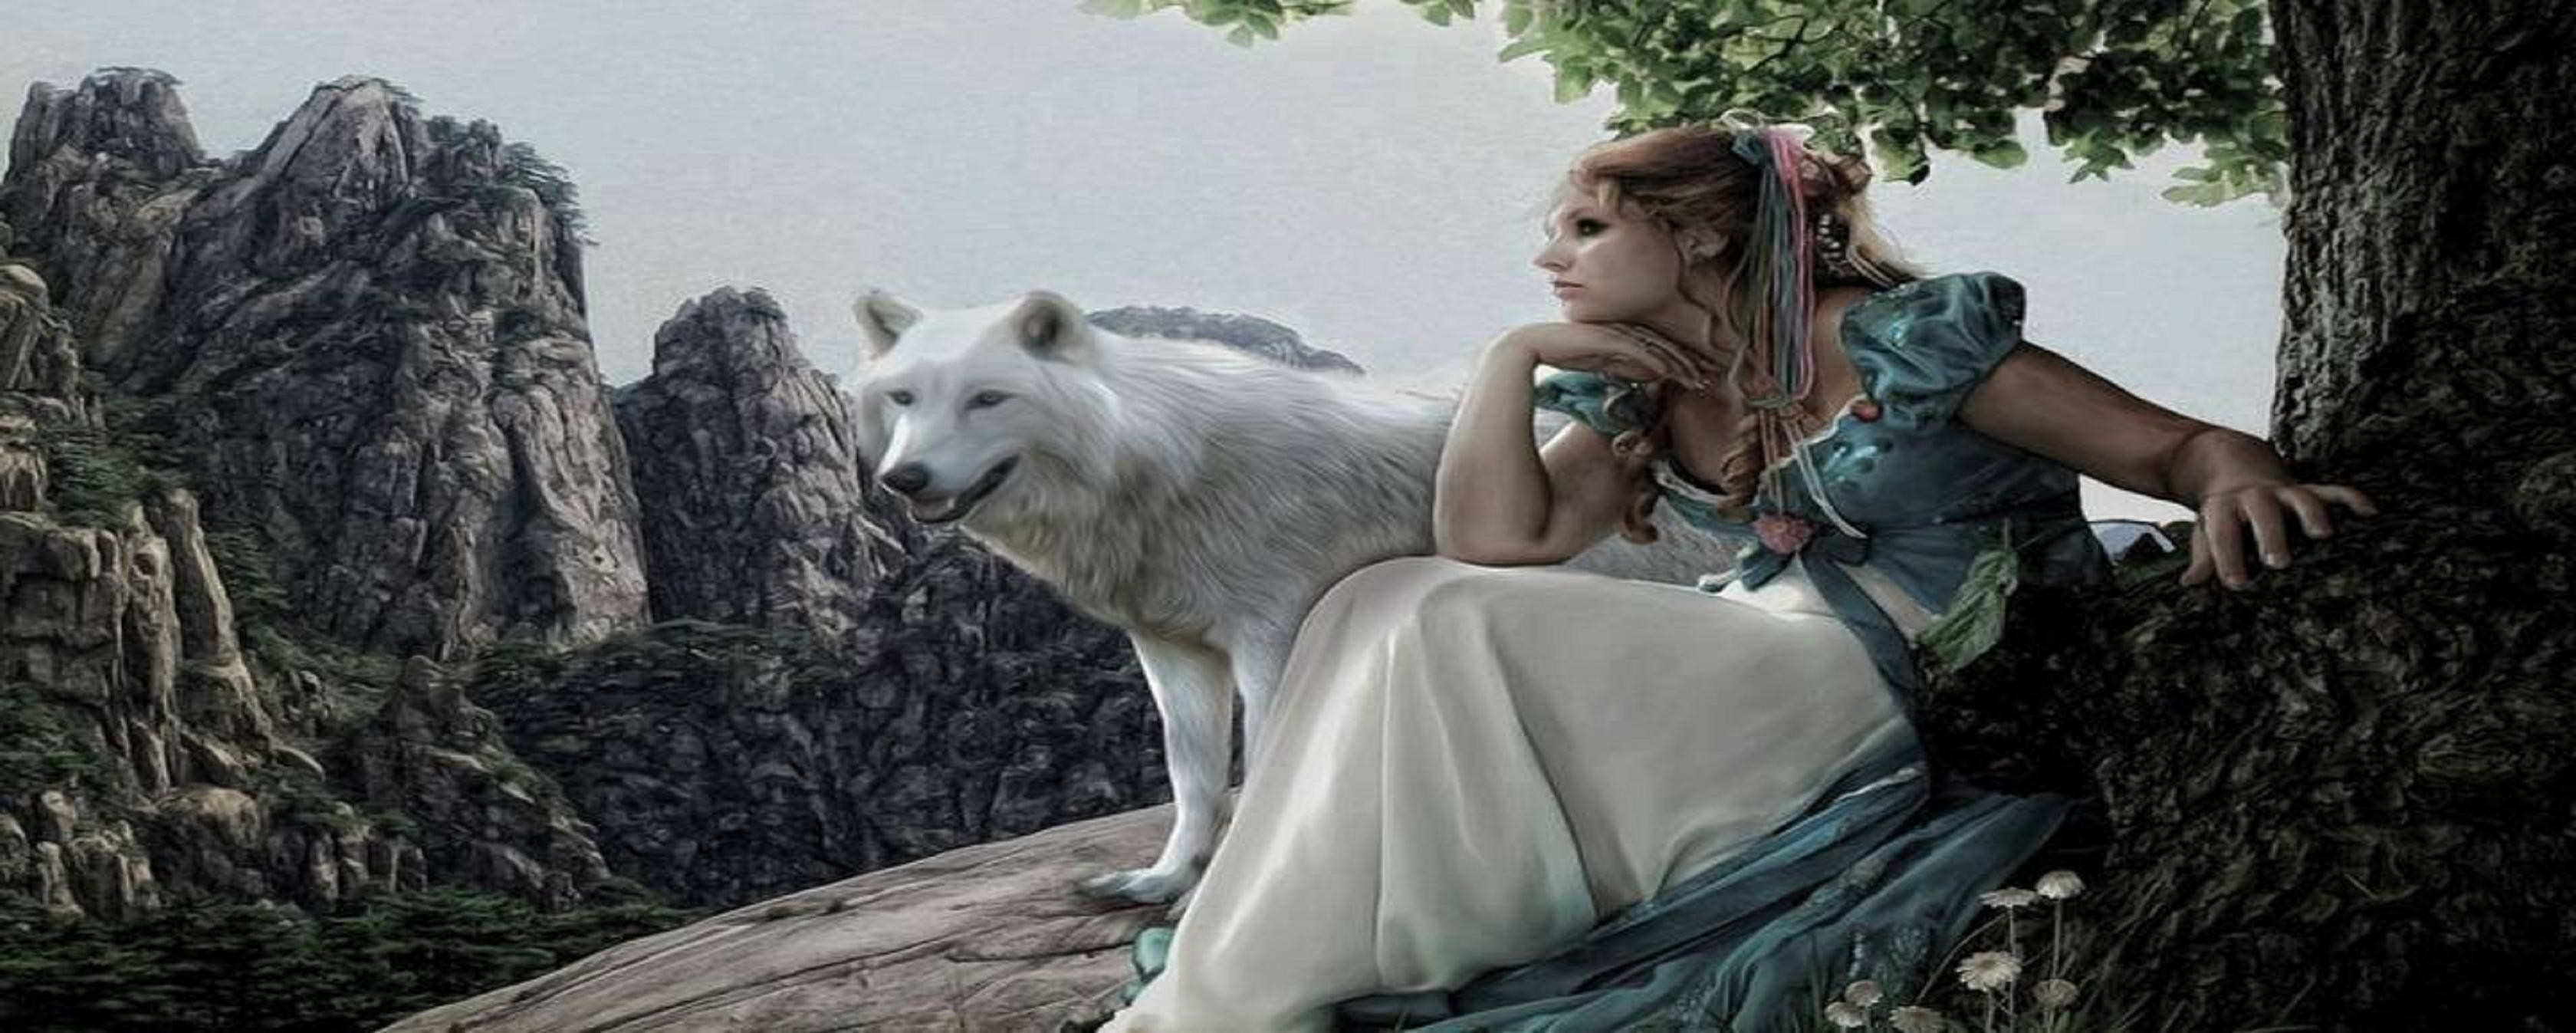 Res: 3360x1347, ... wolf girl wallpaper - photo #25 ...